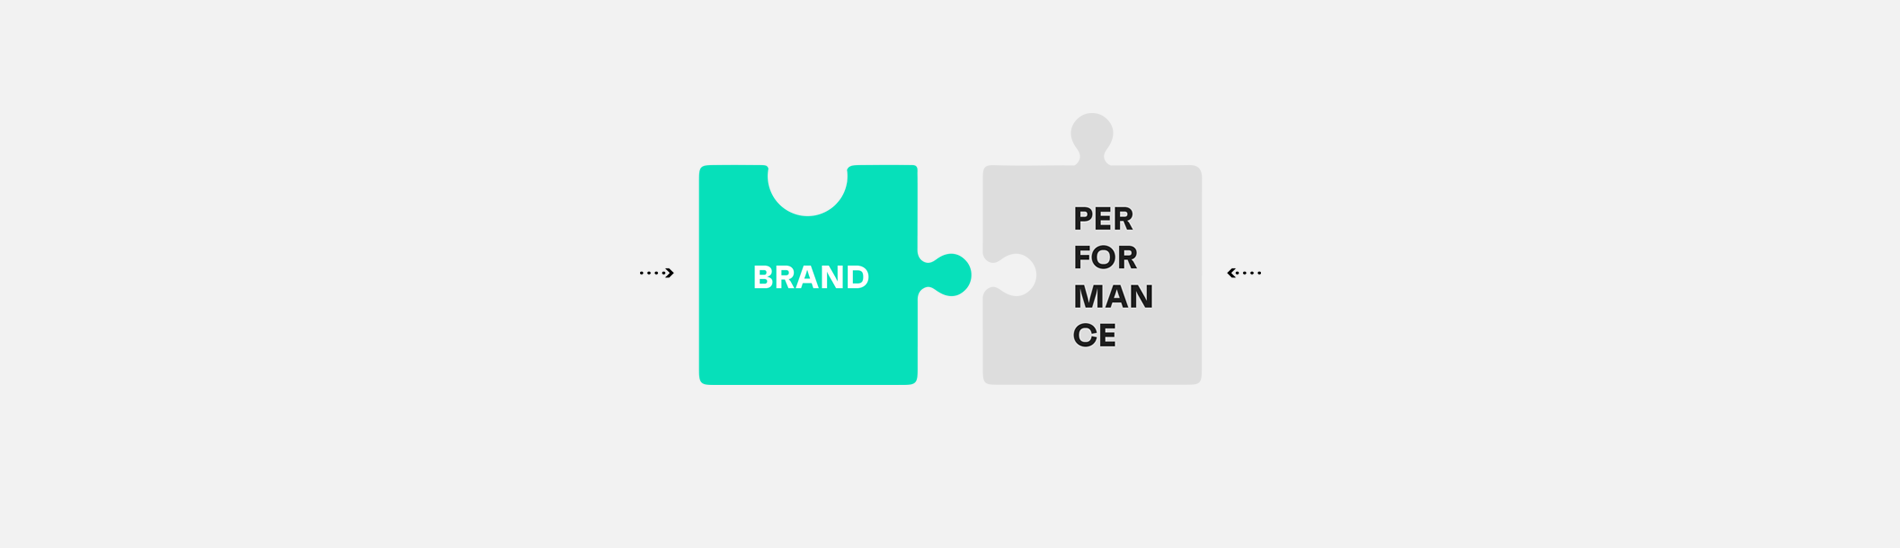 How come it is brand vs performance?